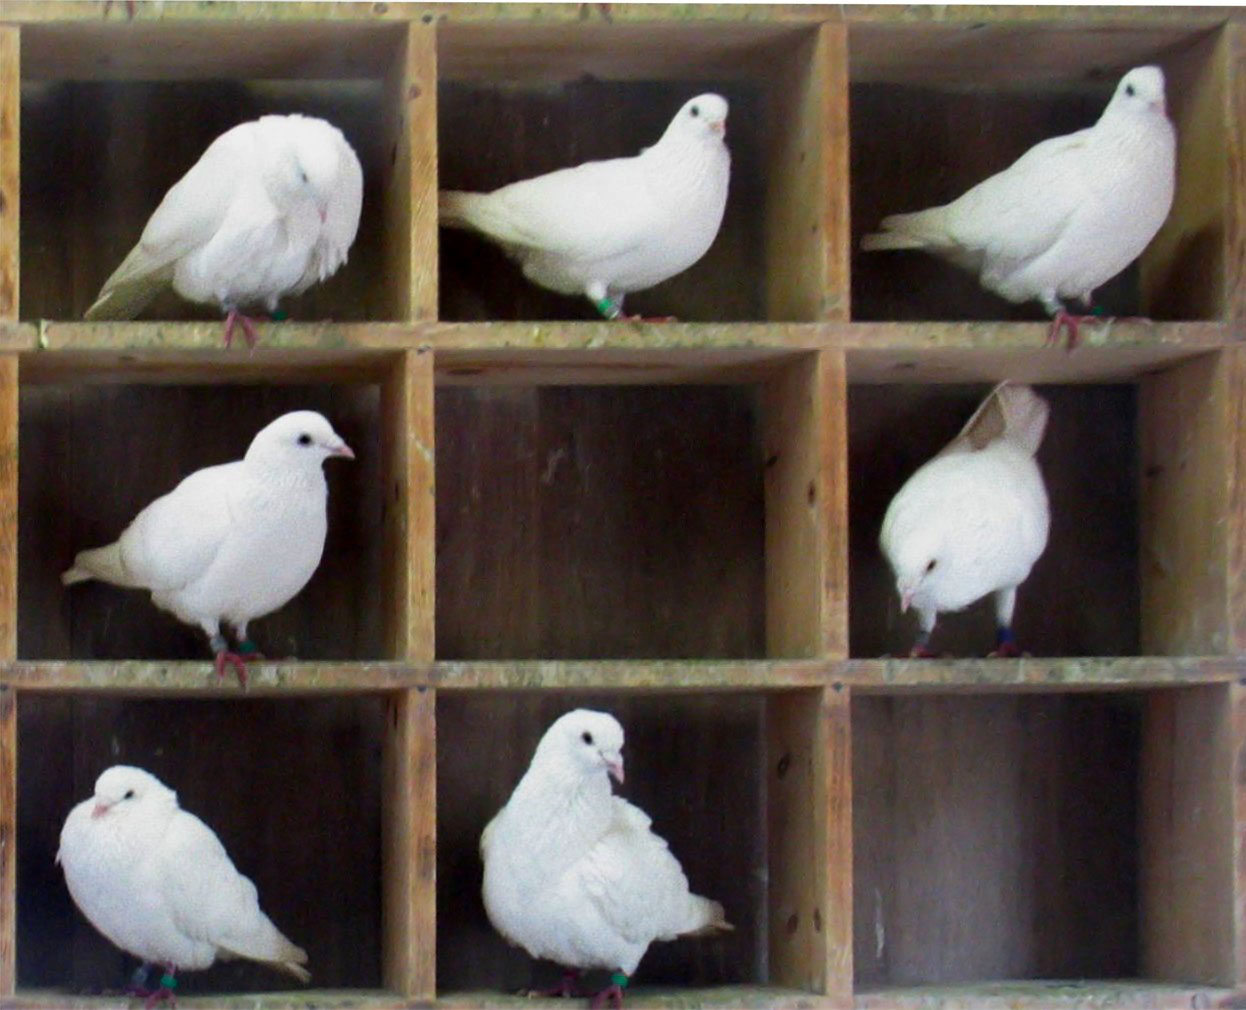 Pigeon Nest Boxes and Perches http://en.wikipedia.org/wiki/File:Pigeons-in-holes.jpg